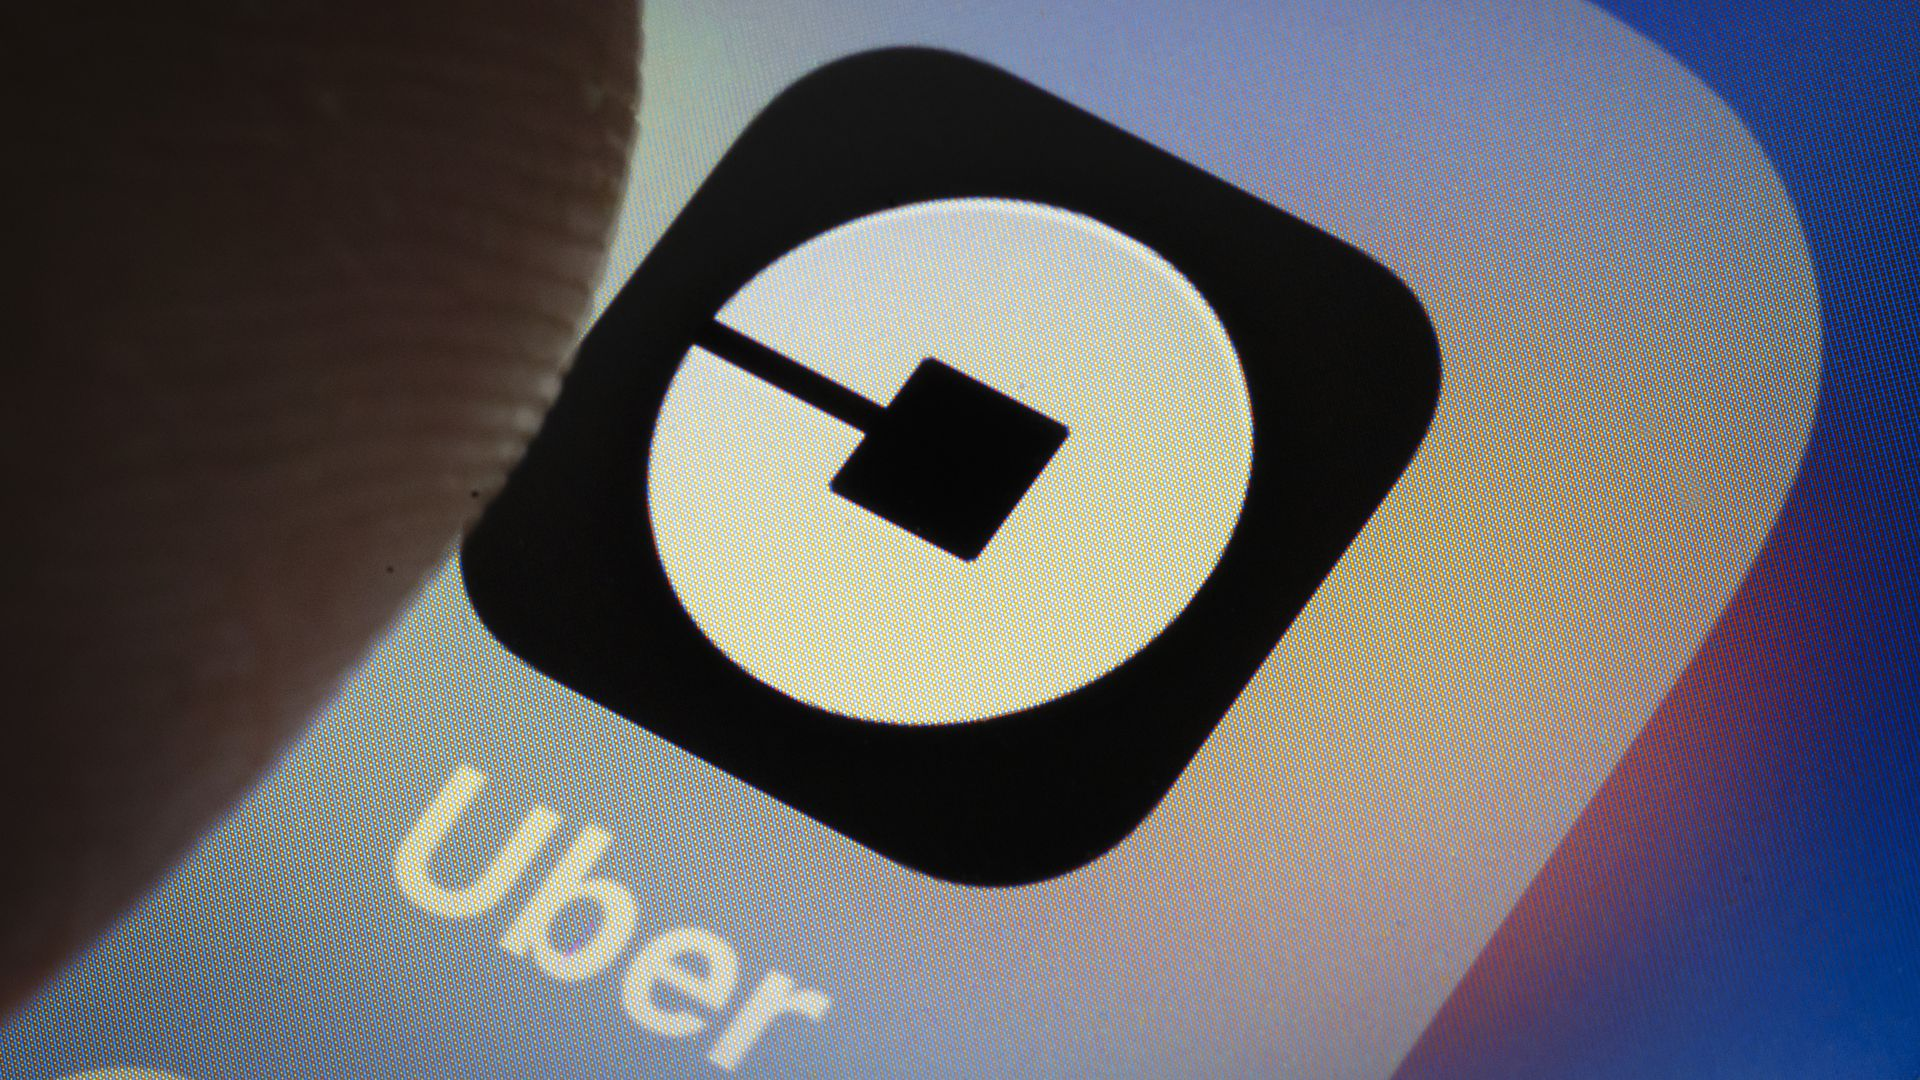 Photo of Uber's mobile app icon.